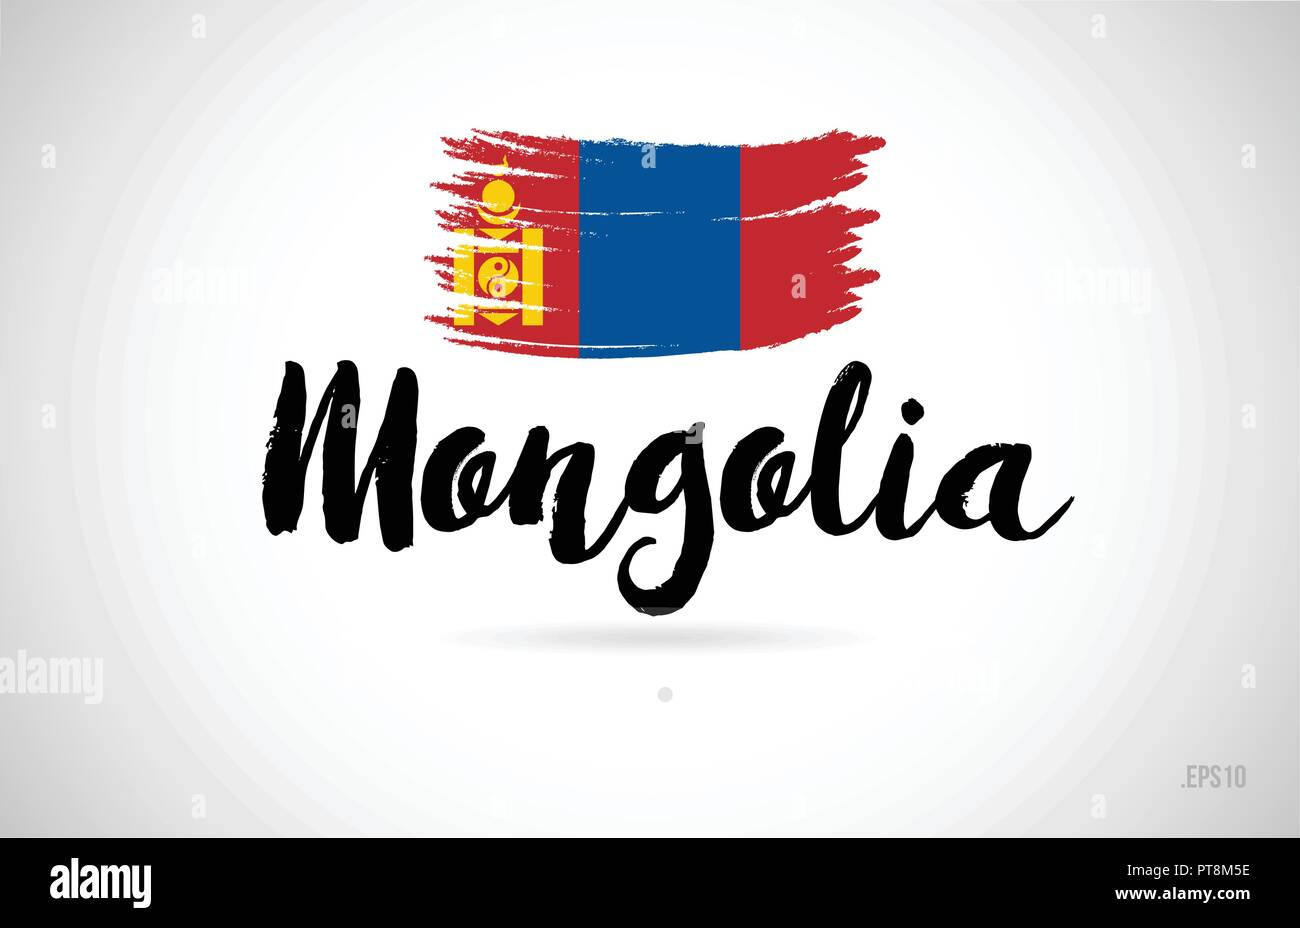 mongolia country flag concept with grunge design suitable for a logo icon design Stock Vector